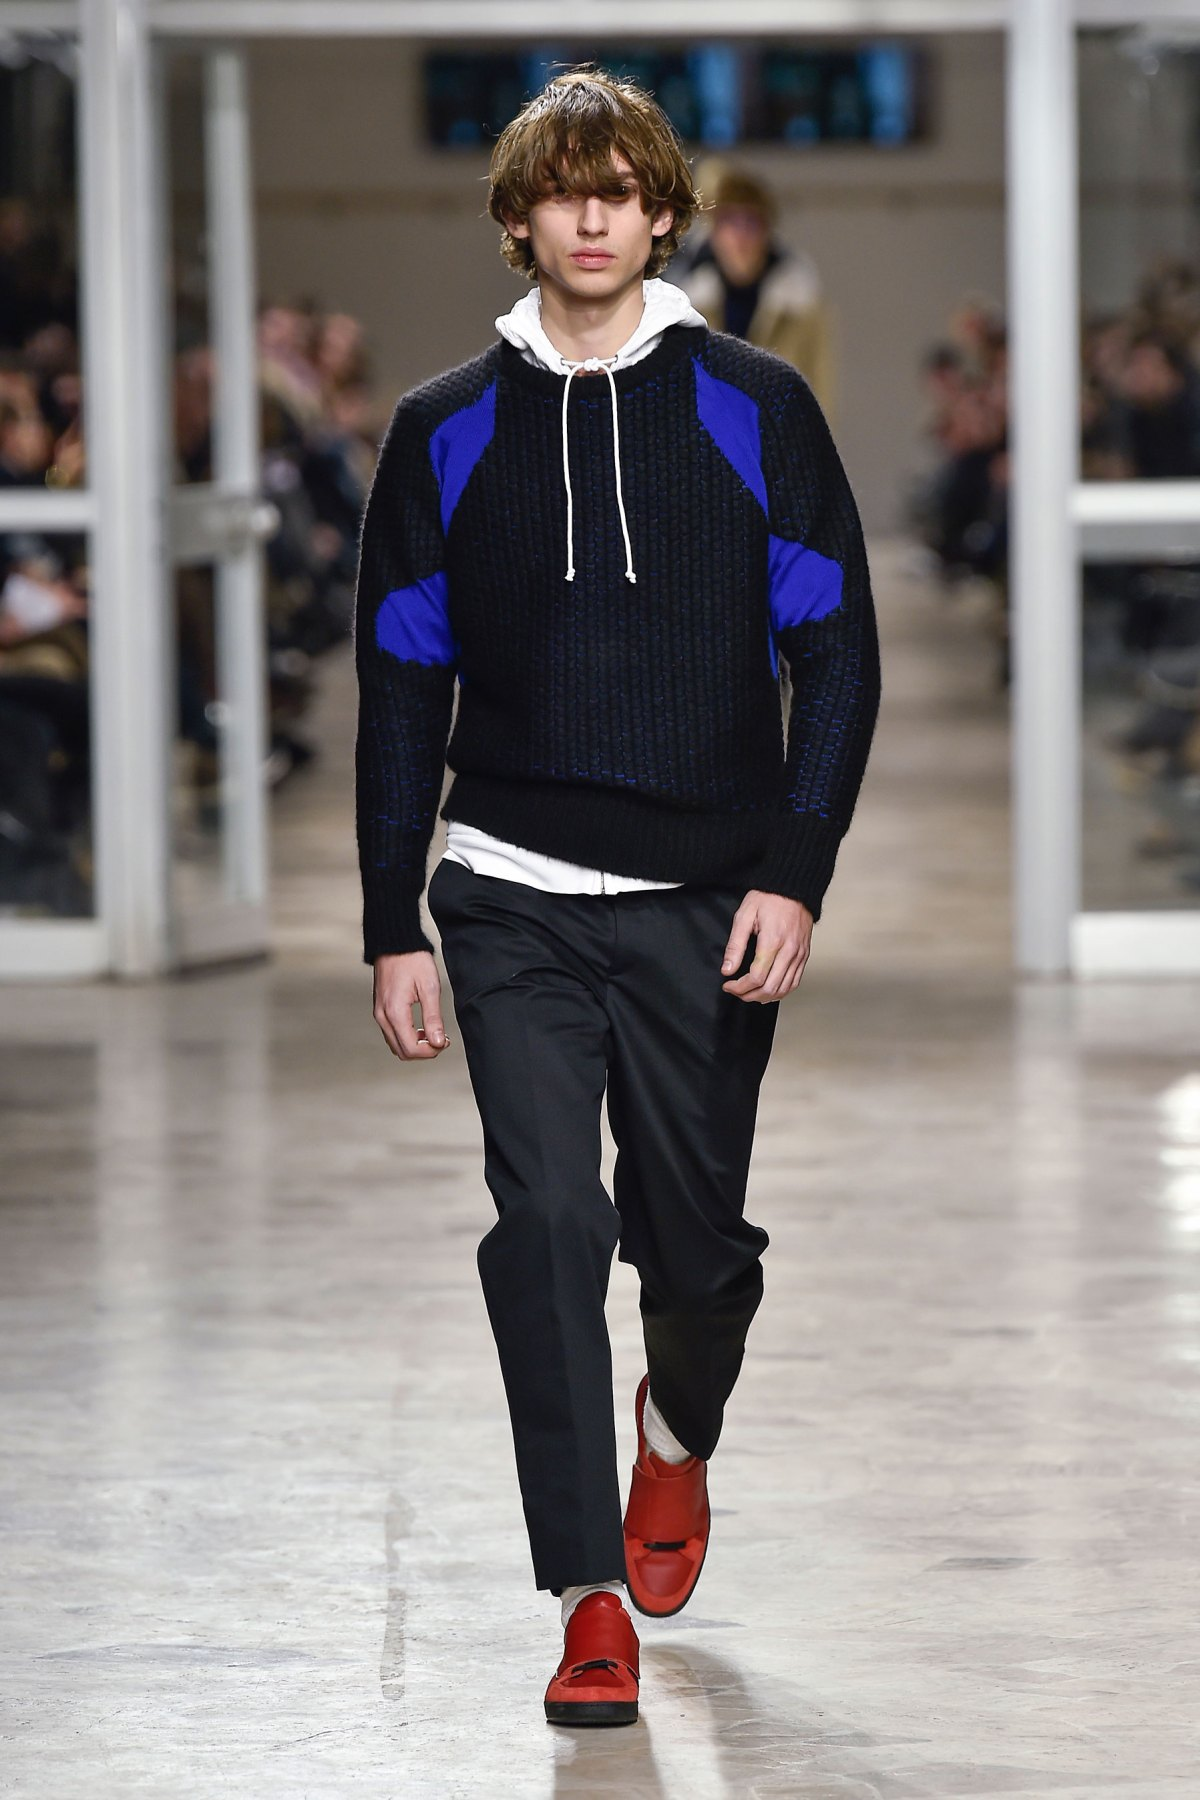 Tim Coppens PU m RF17 0855